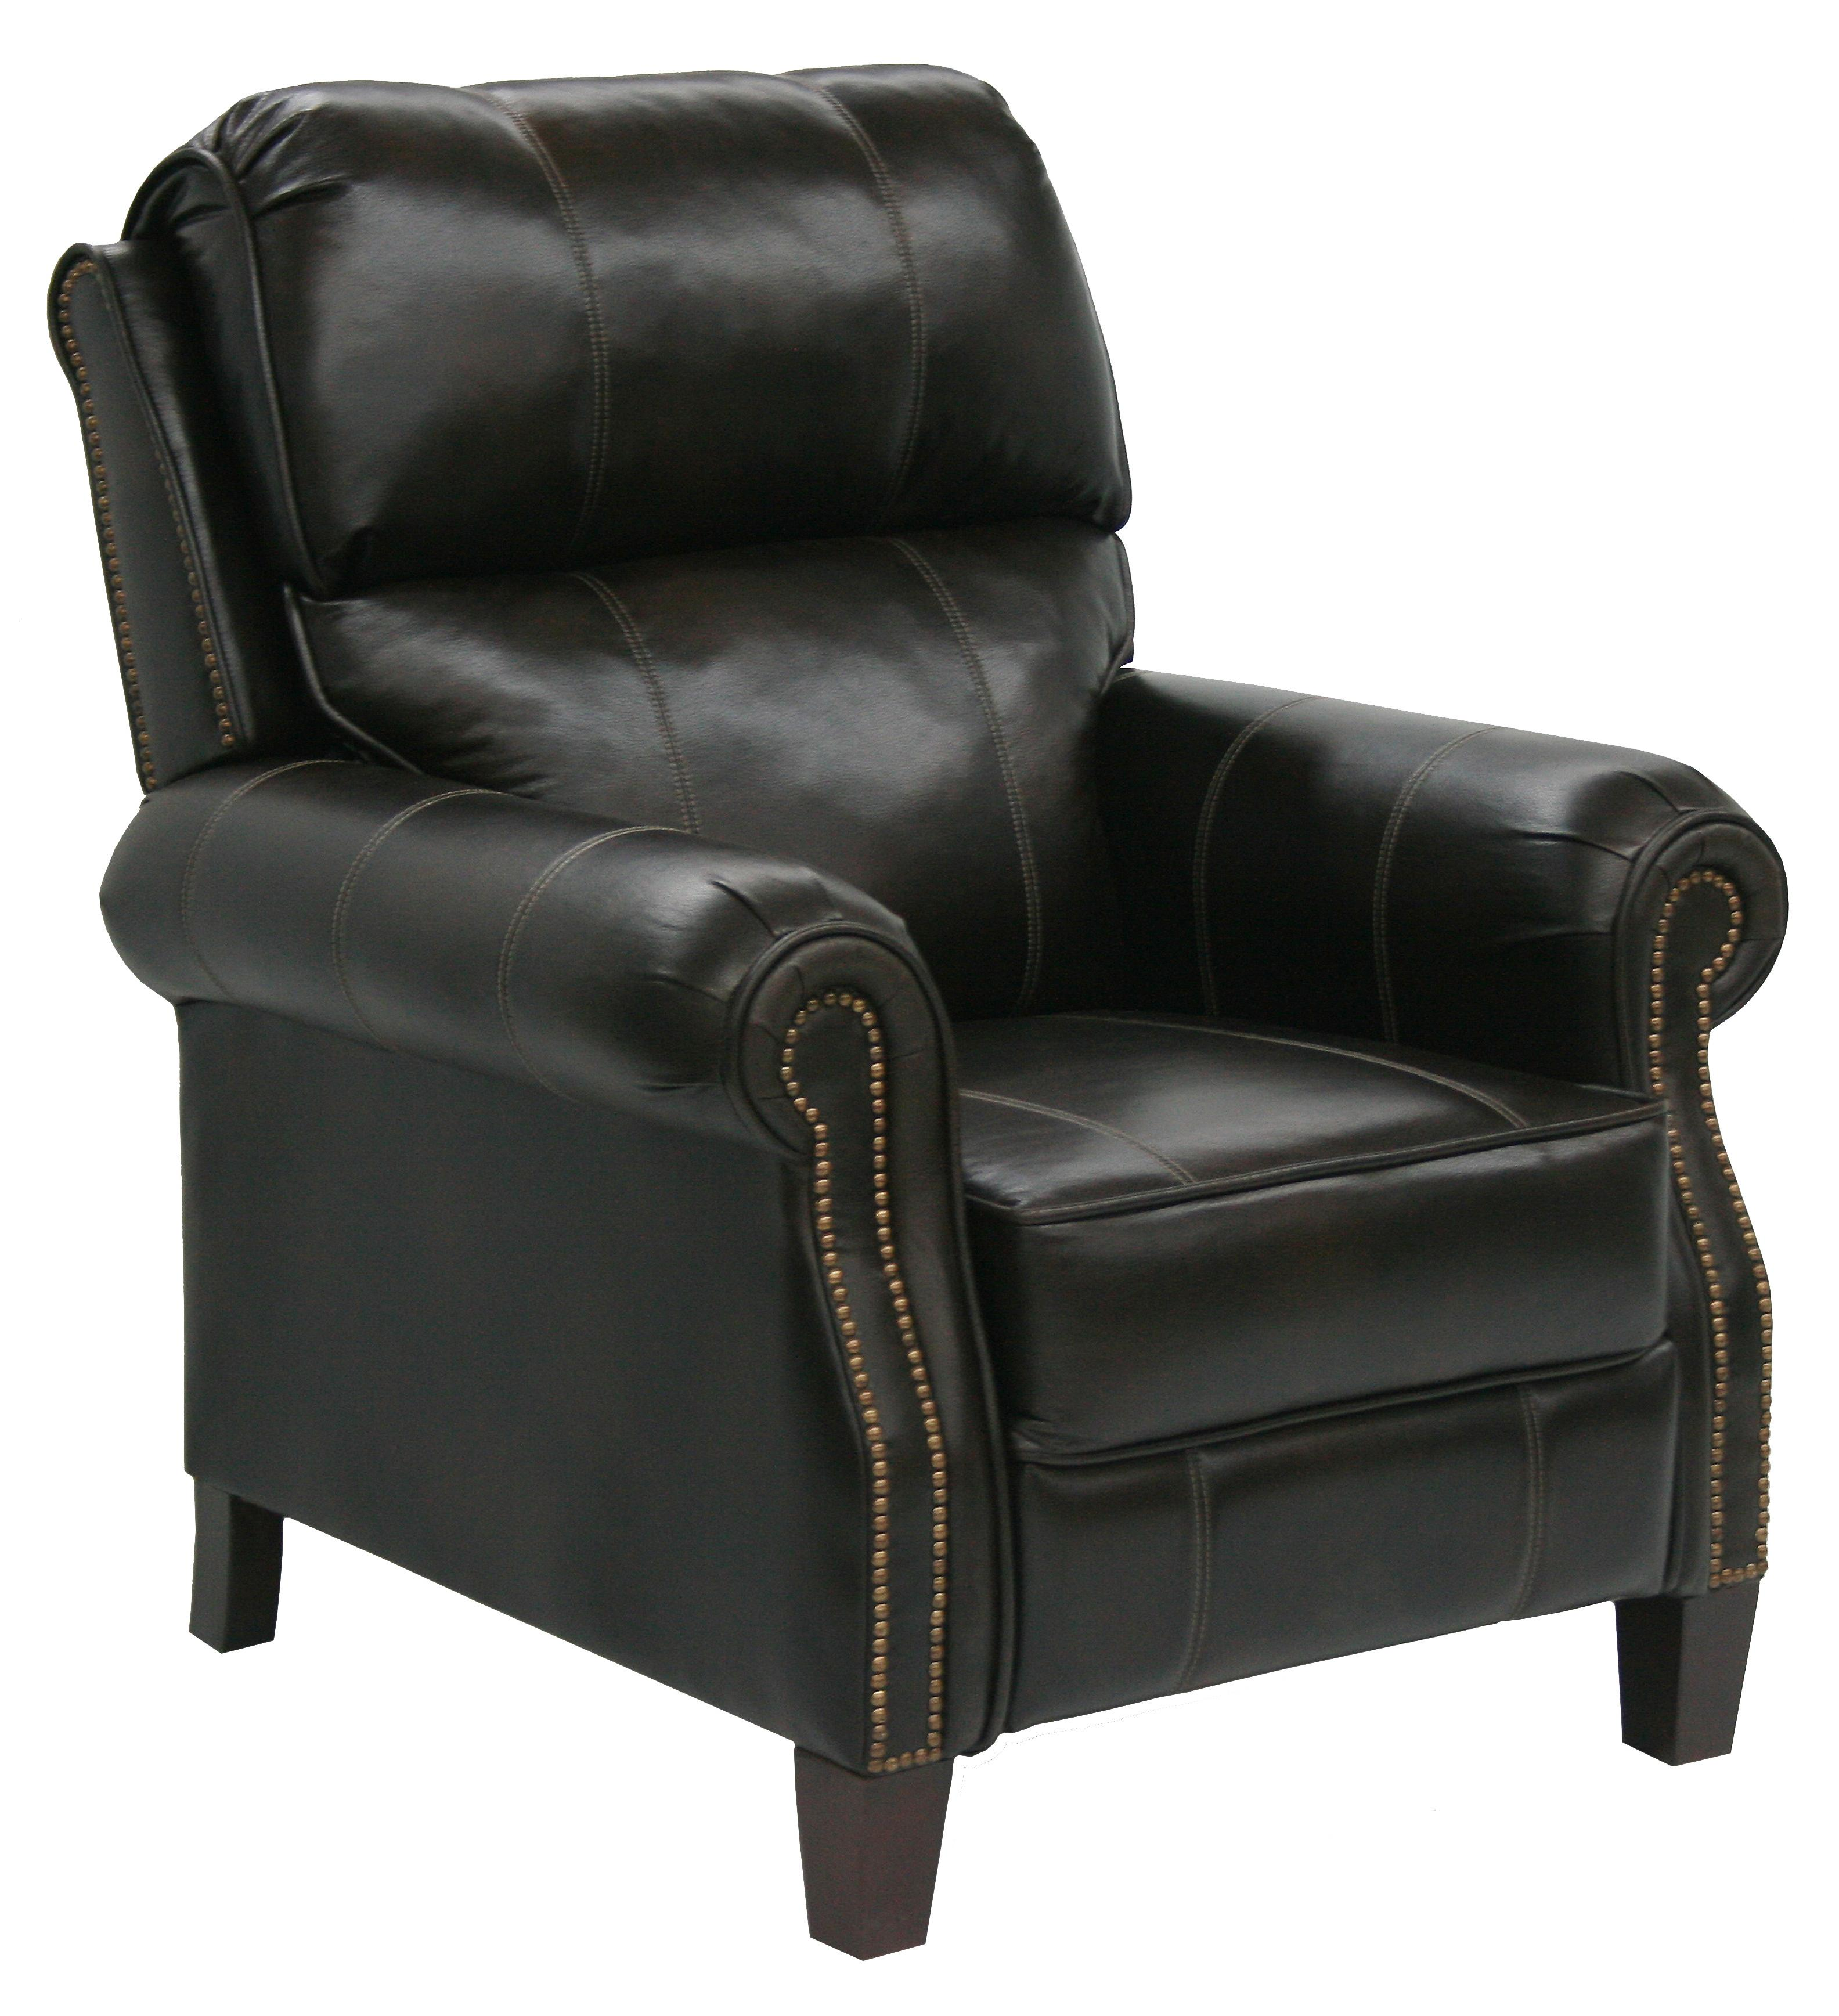 Catnapper motion chairs and recliners frazier high leg for Recliner chair